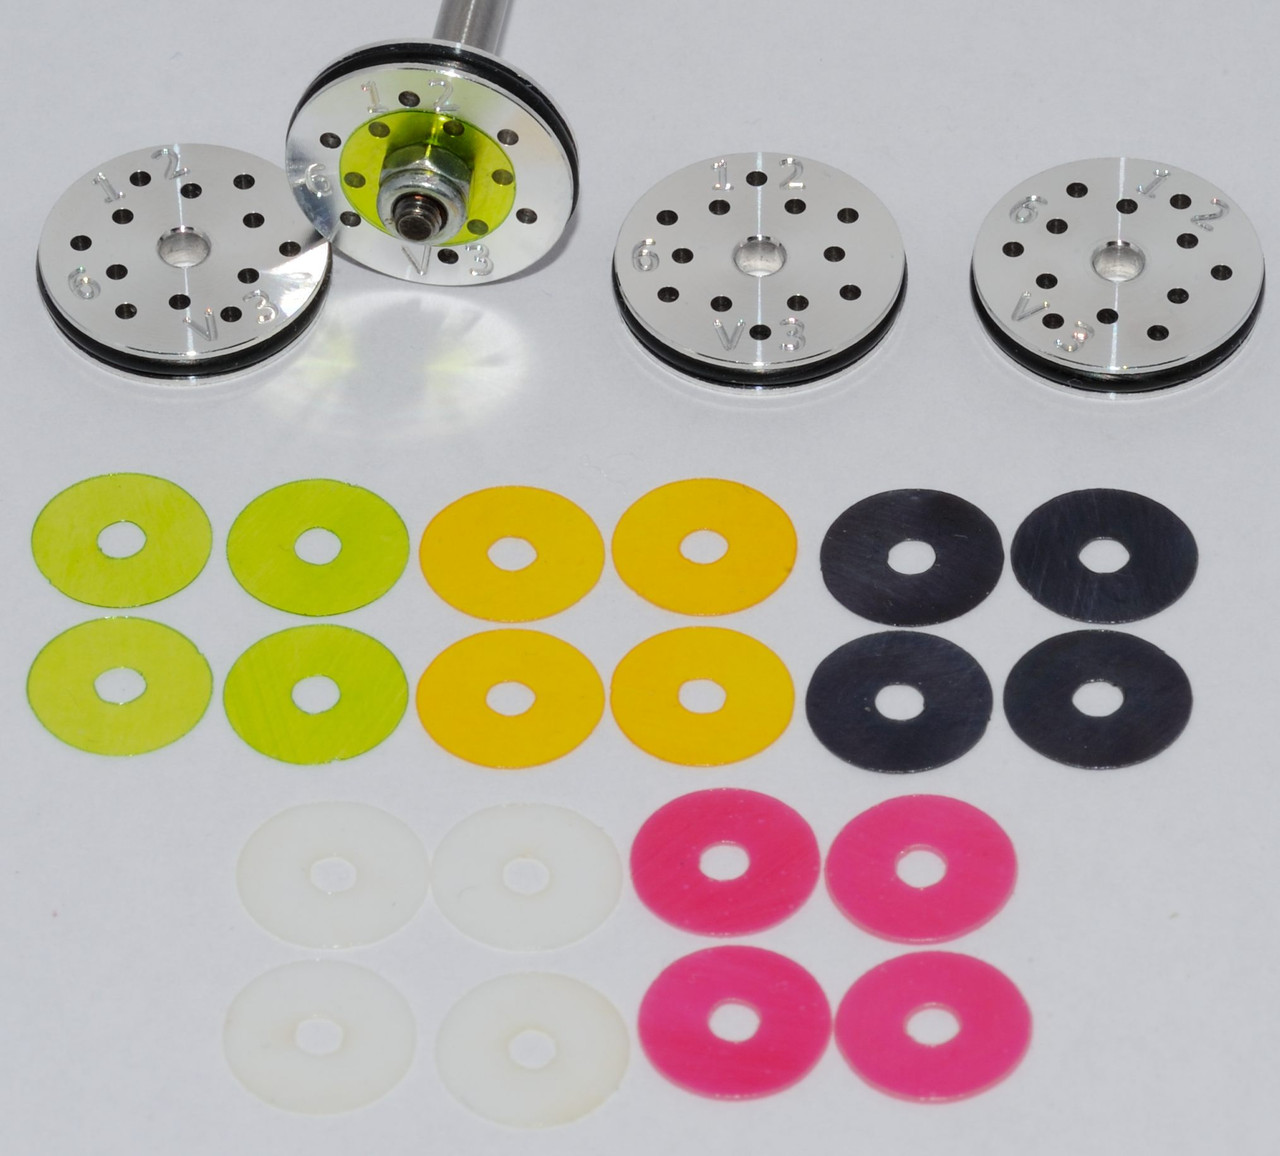 #1 RC Shock Rebound Valved Pistons 16mm, 6 hole, 1.2mm. Losi 8ight, HB, Serpent 2.0